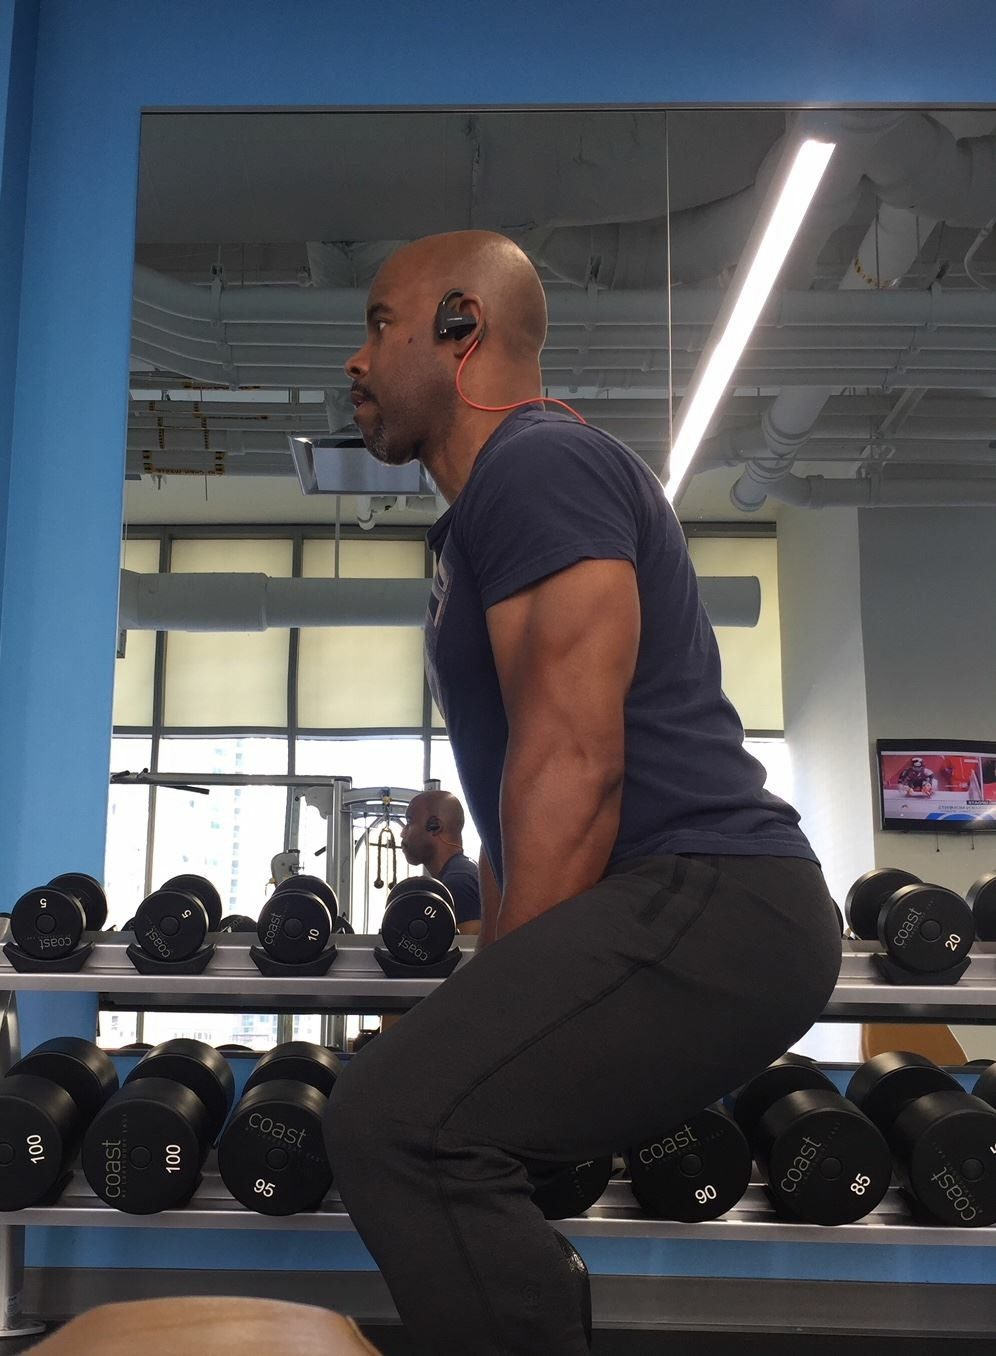 Personal Trainer Chicago, Illinois - Keven Brown